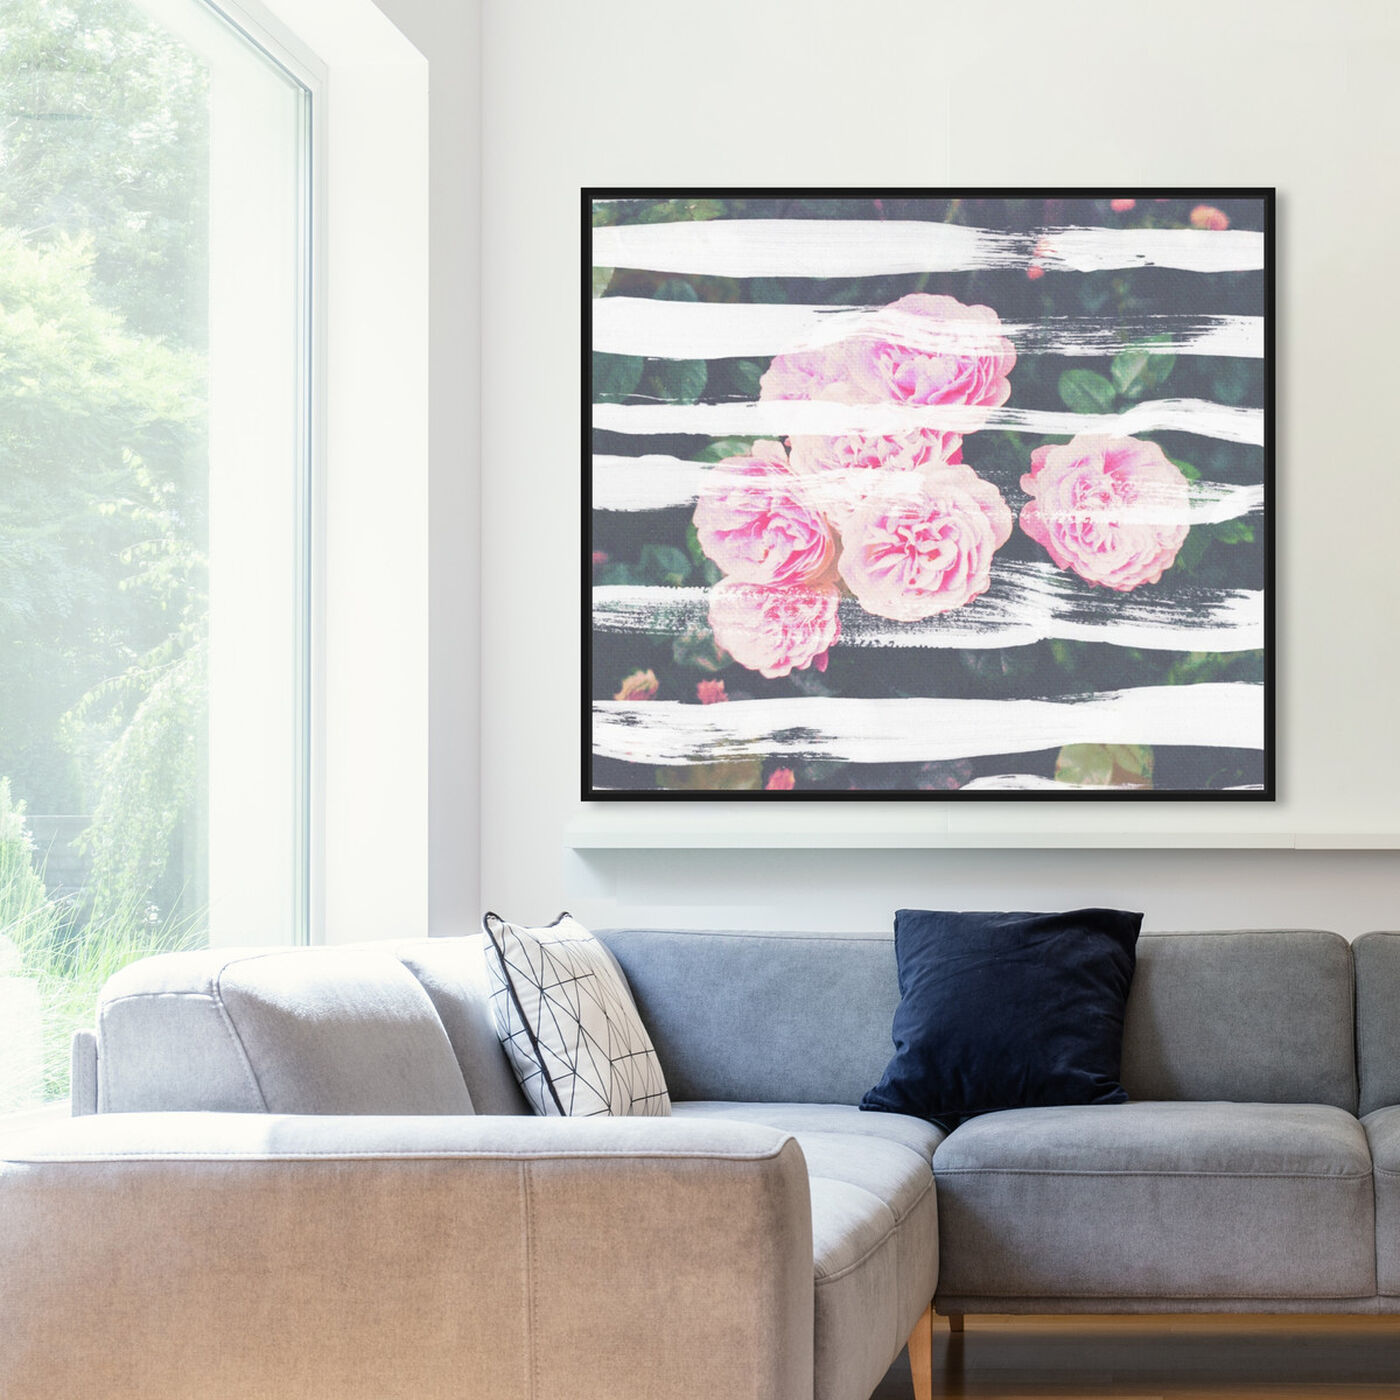 Hanging view of Blooming Strokes featuring floral and botanical and florals art.